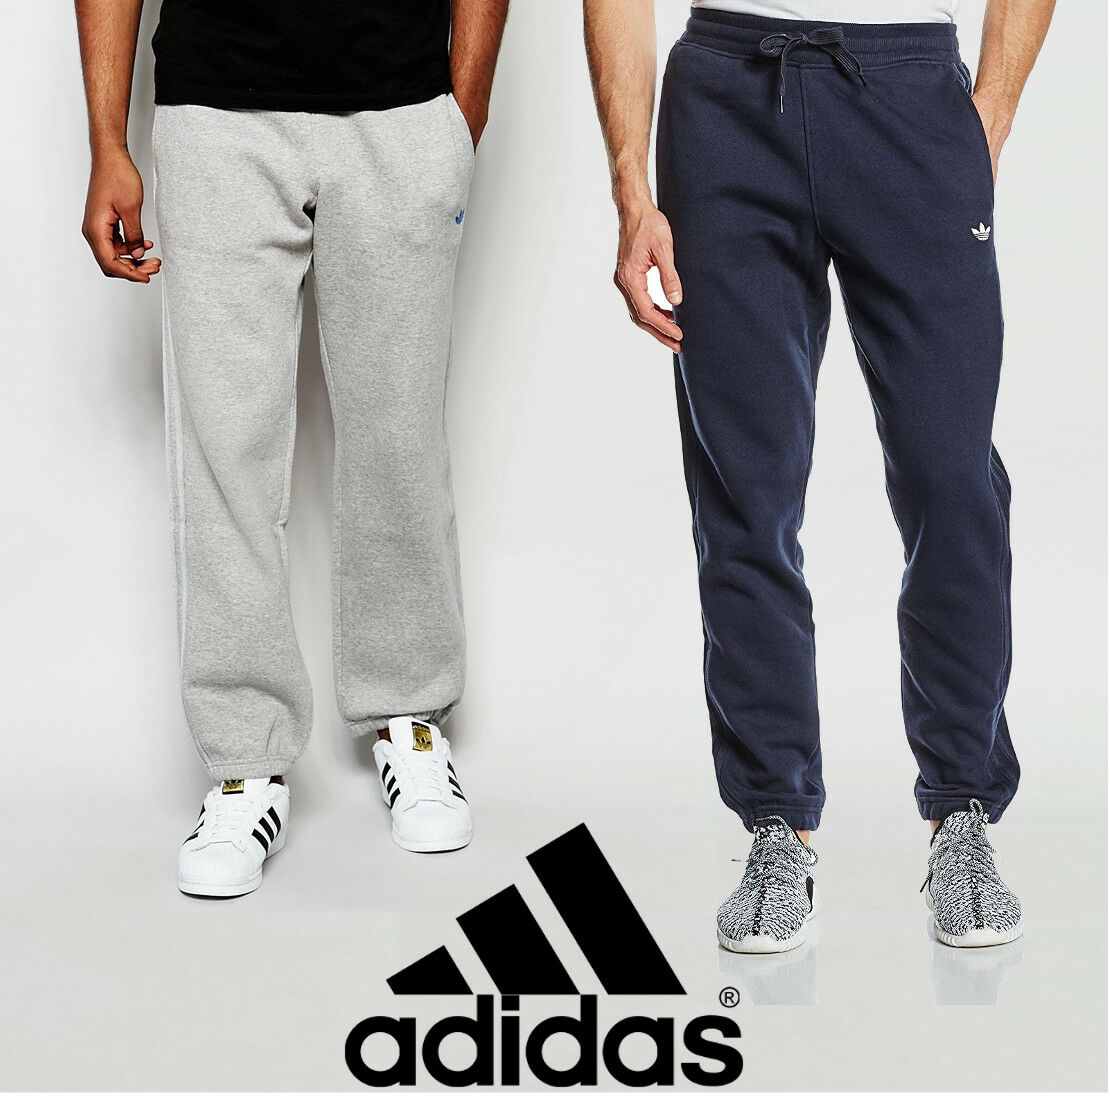 adidas fleece bottoms